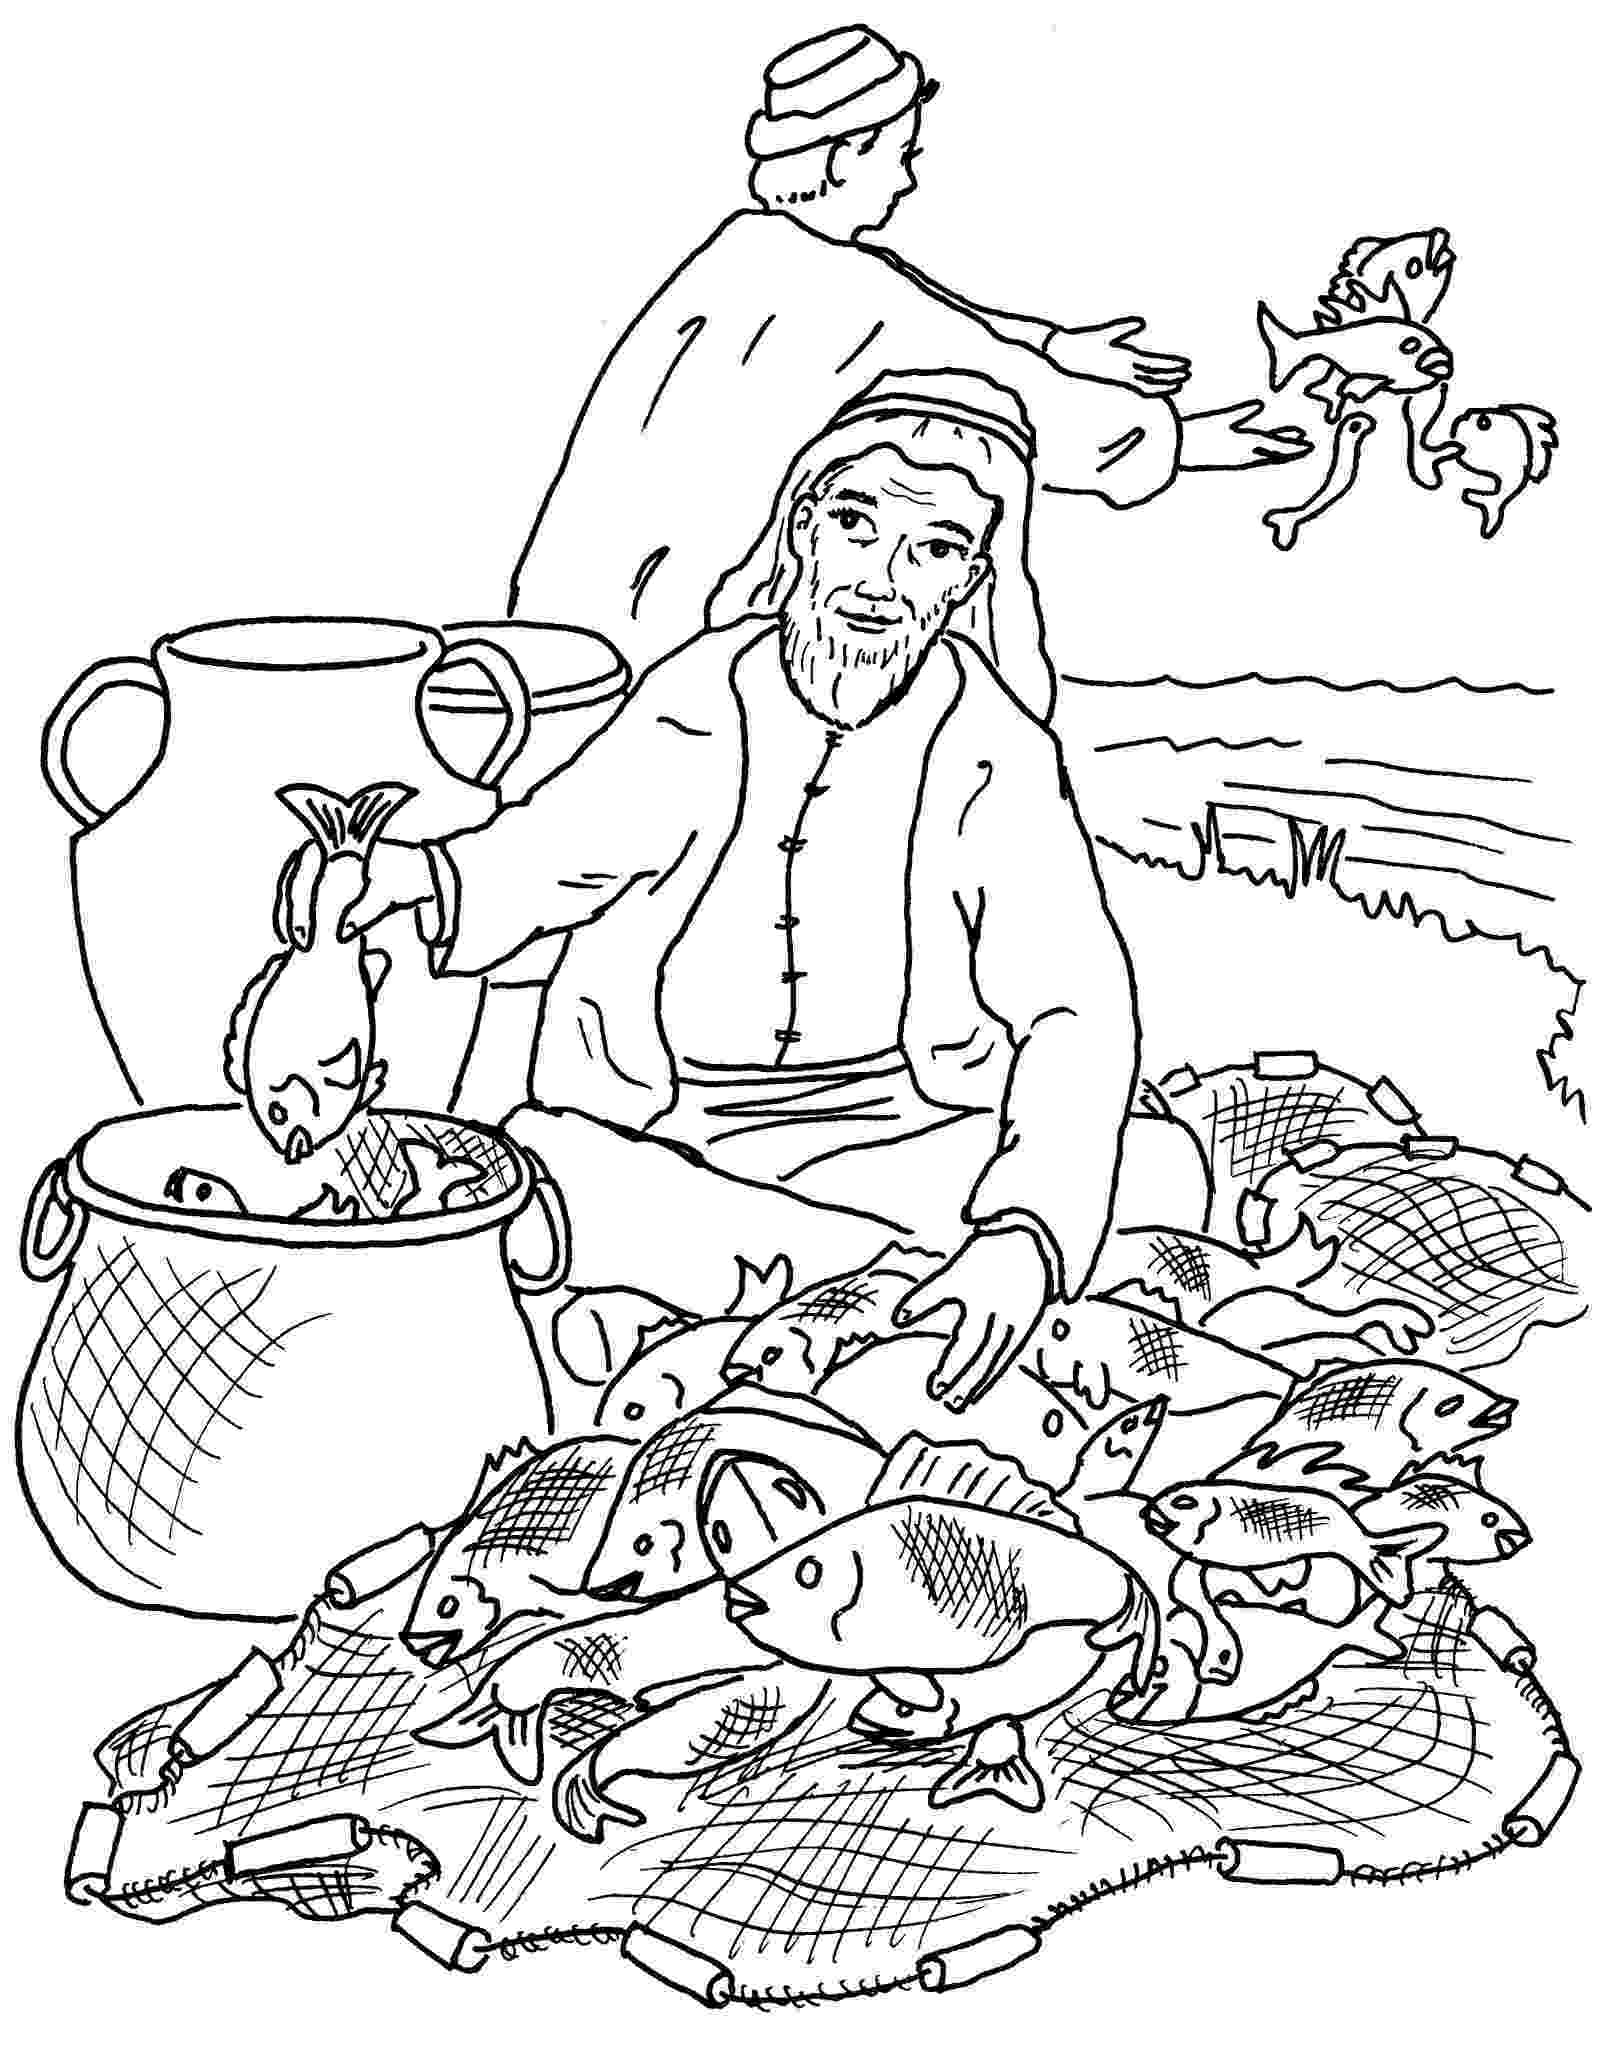 fishers of men coloring page fishers of men coloring pages coloring of men page fishers